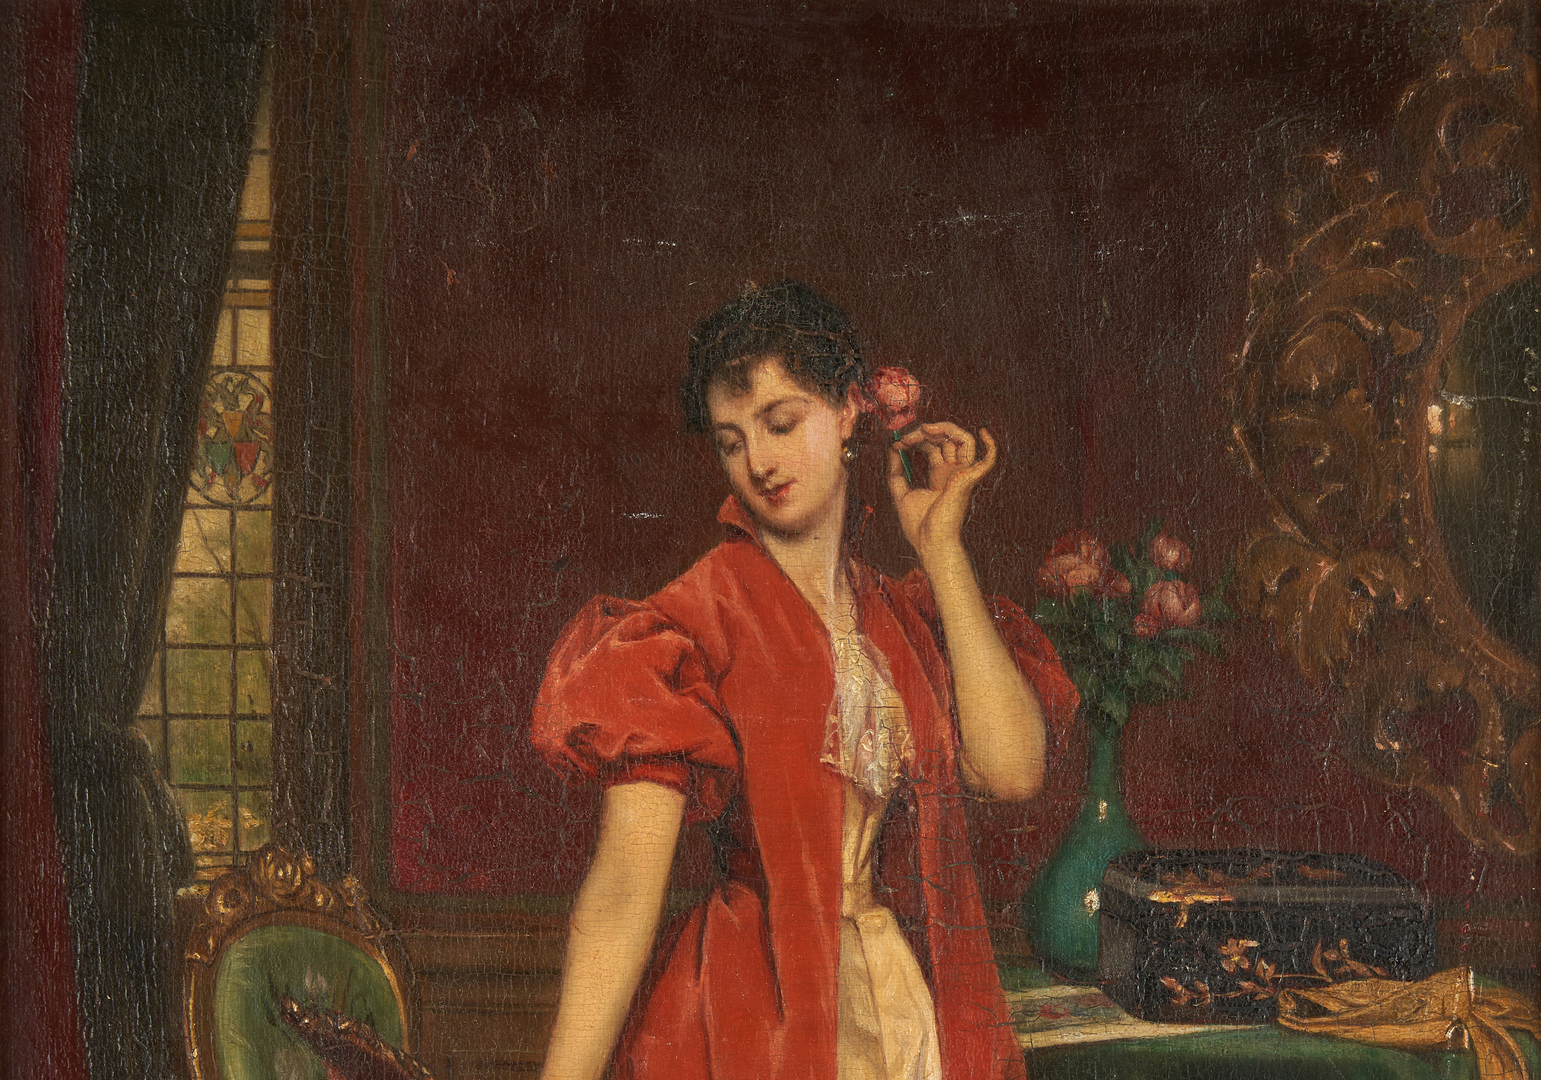 Lot 379: Attr. Louis Tannert O/P, Young Woman with Mirror